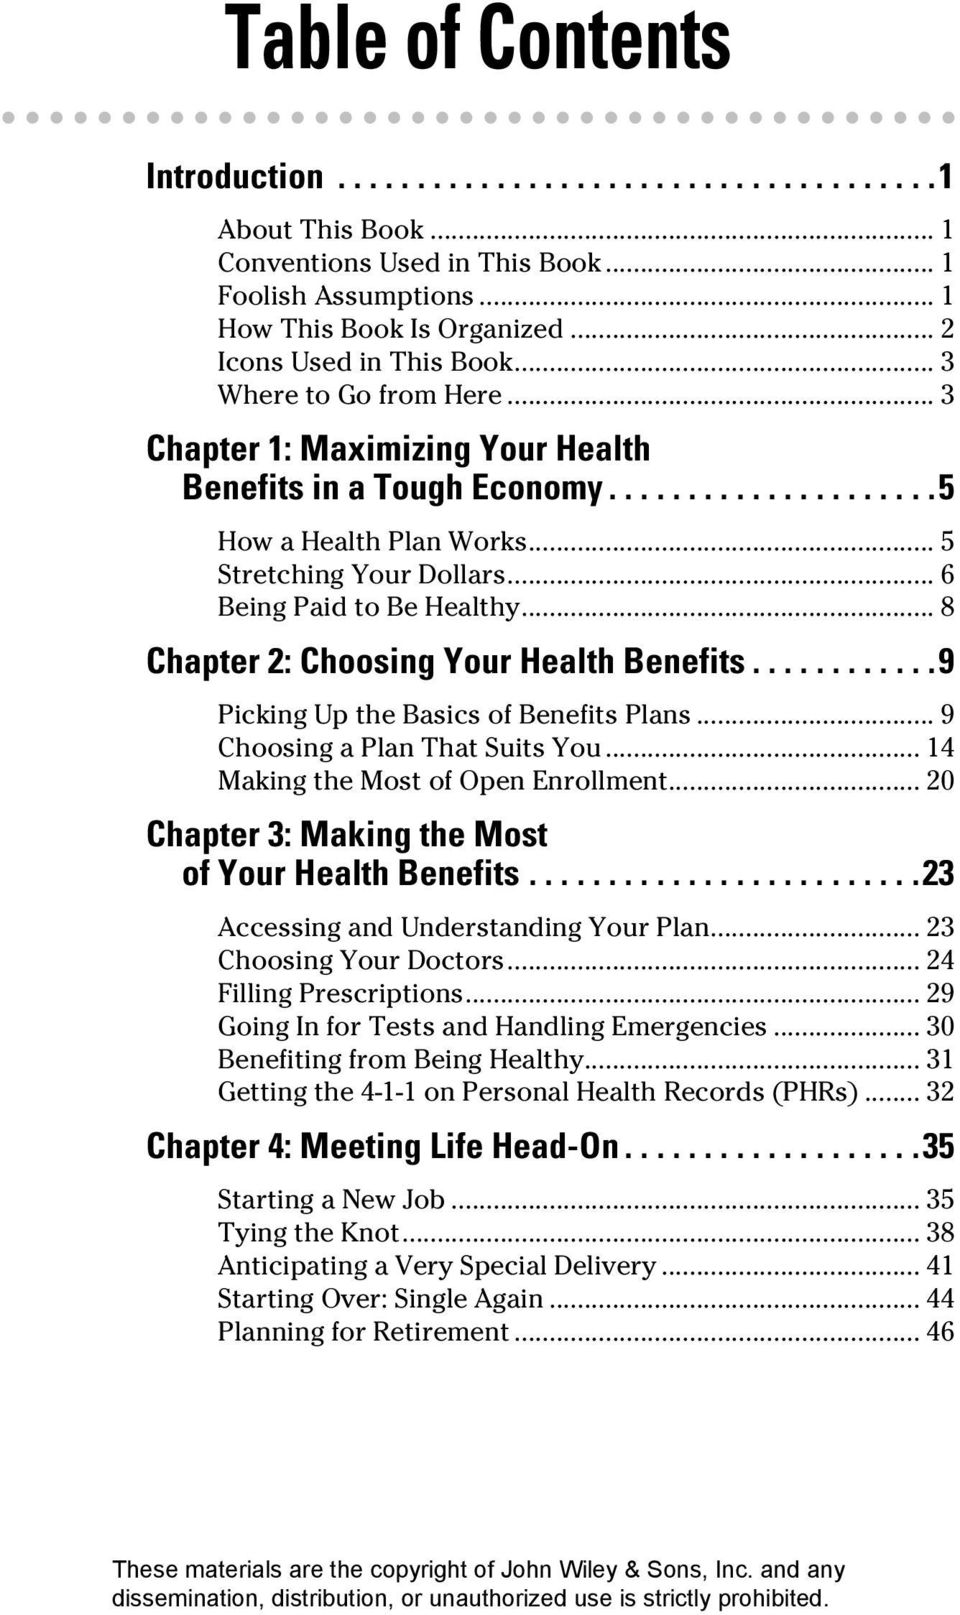 .. 6 Being Paid to Be Healthy... 8 Chapter 2: Choosing Your Health Benefits............9 Picking Up the Basics of Benefits Plans... 9 Choosing a Plan That Suits You.